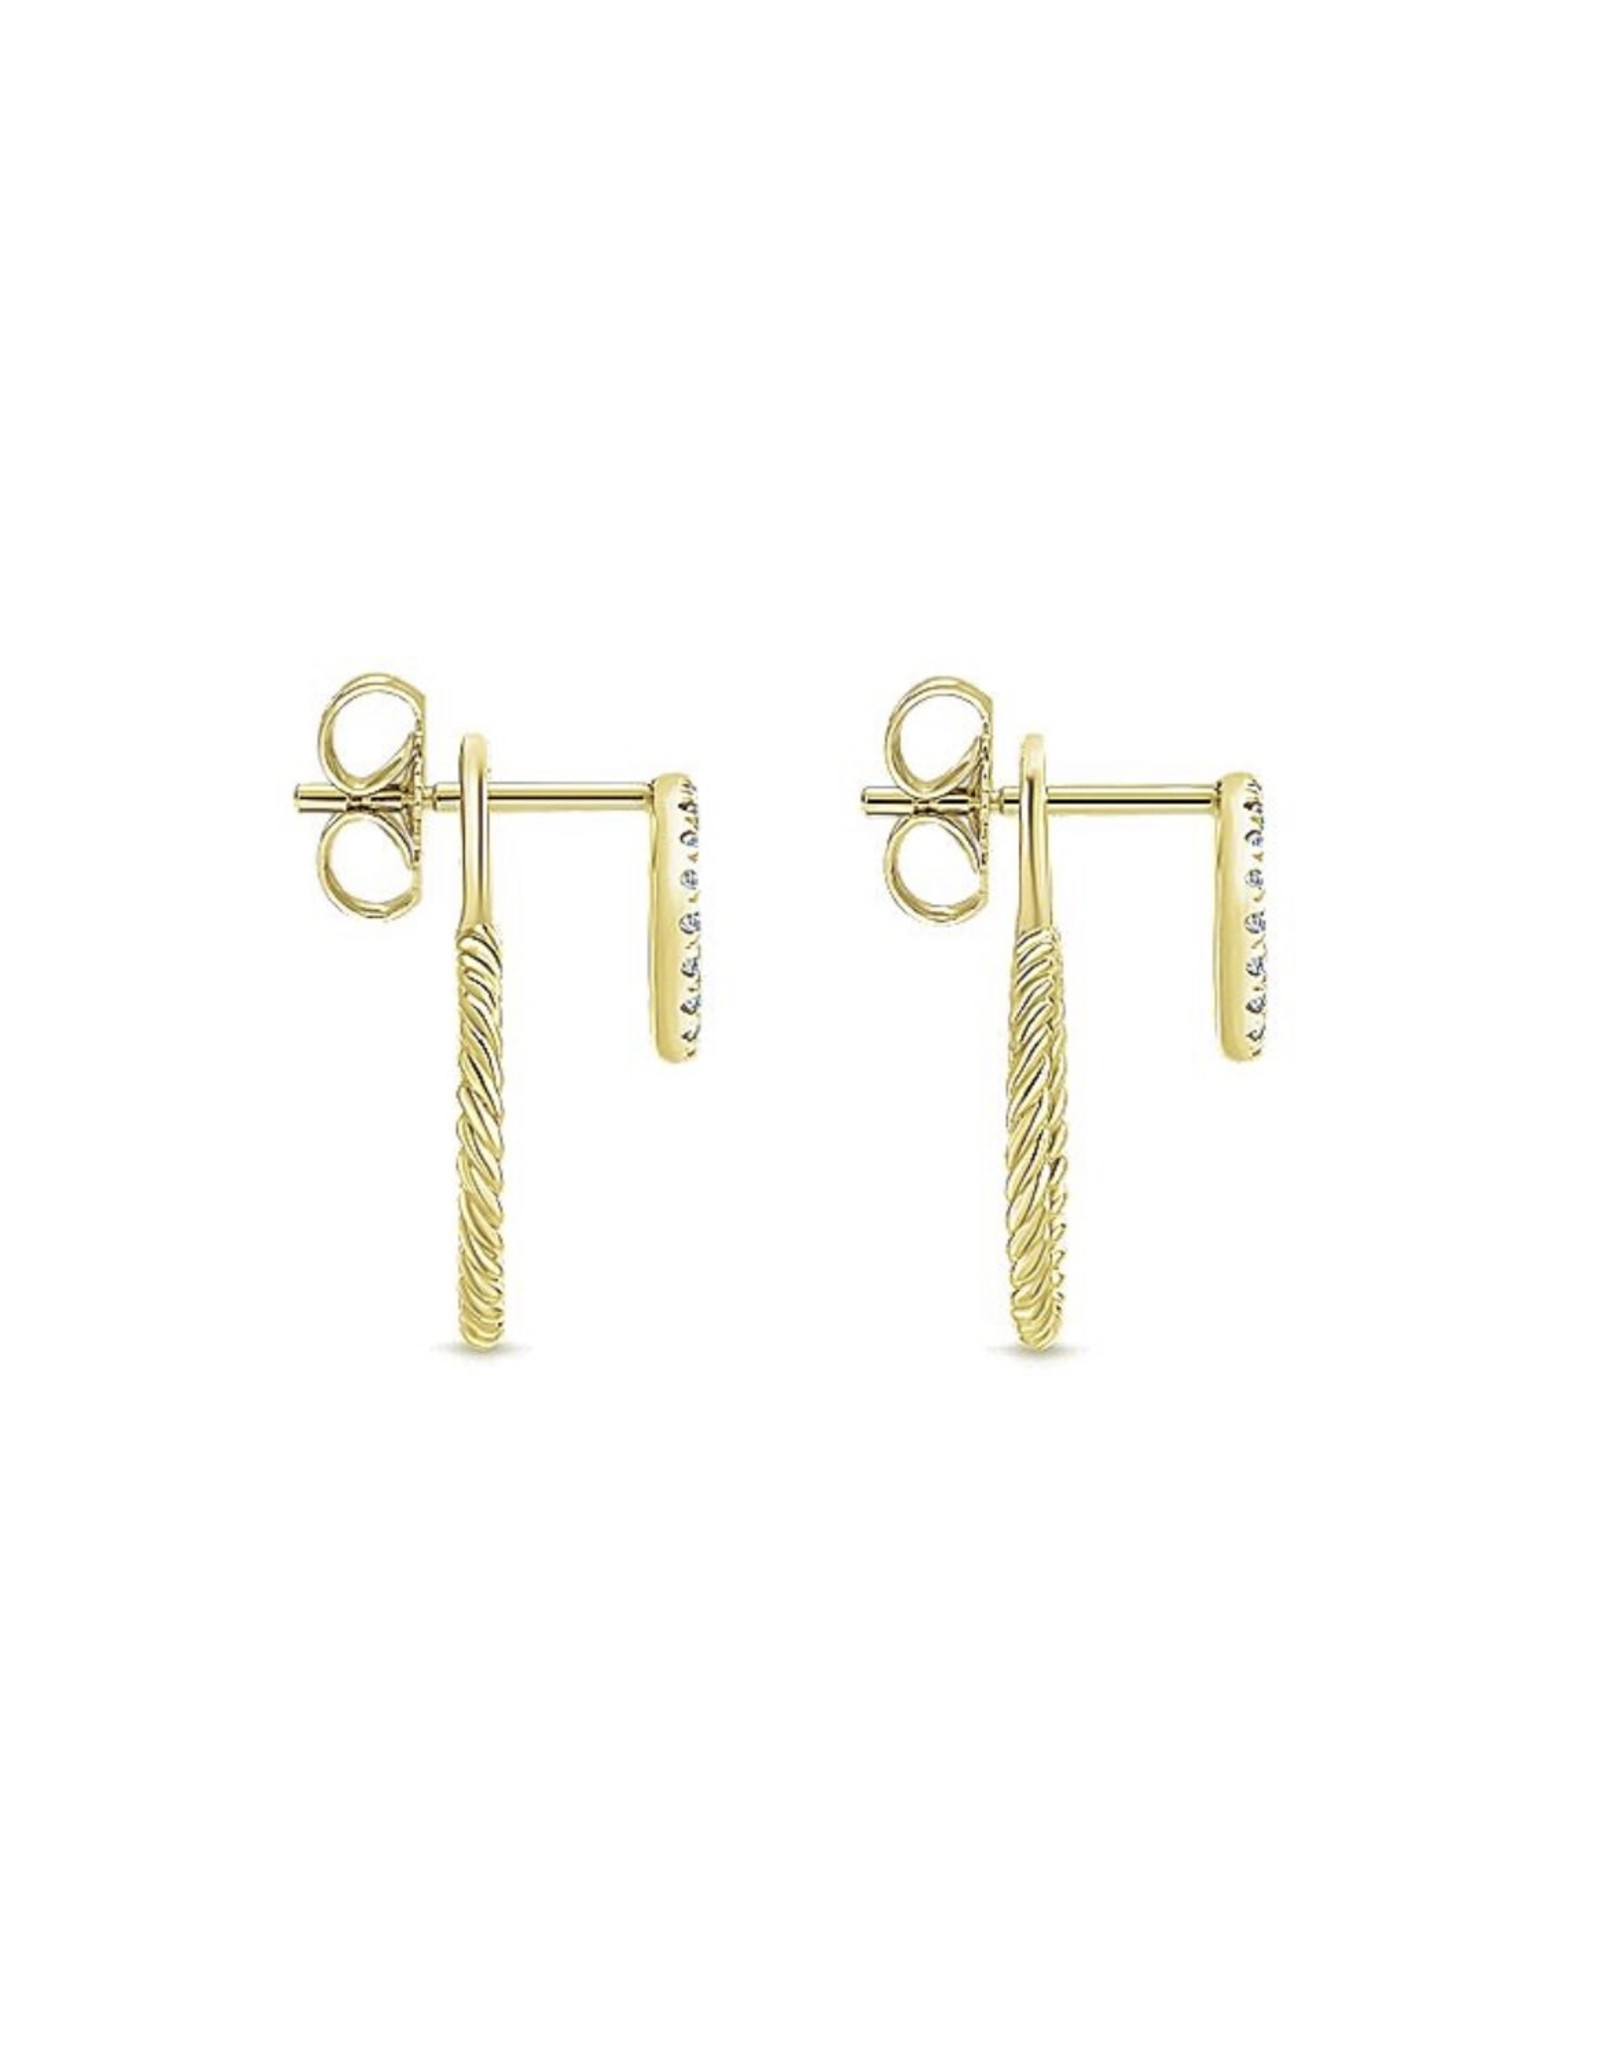 14K Yellow Gold Double Circle Diamond and Twisted Rope Earrings, D: 0.19ct